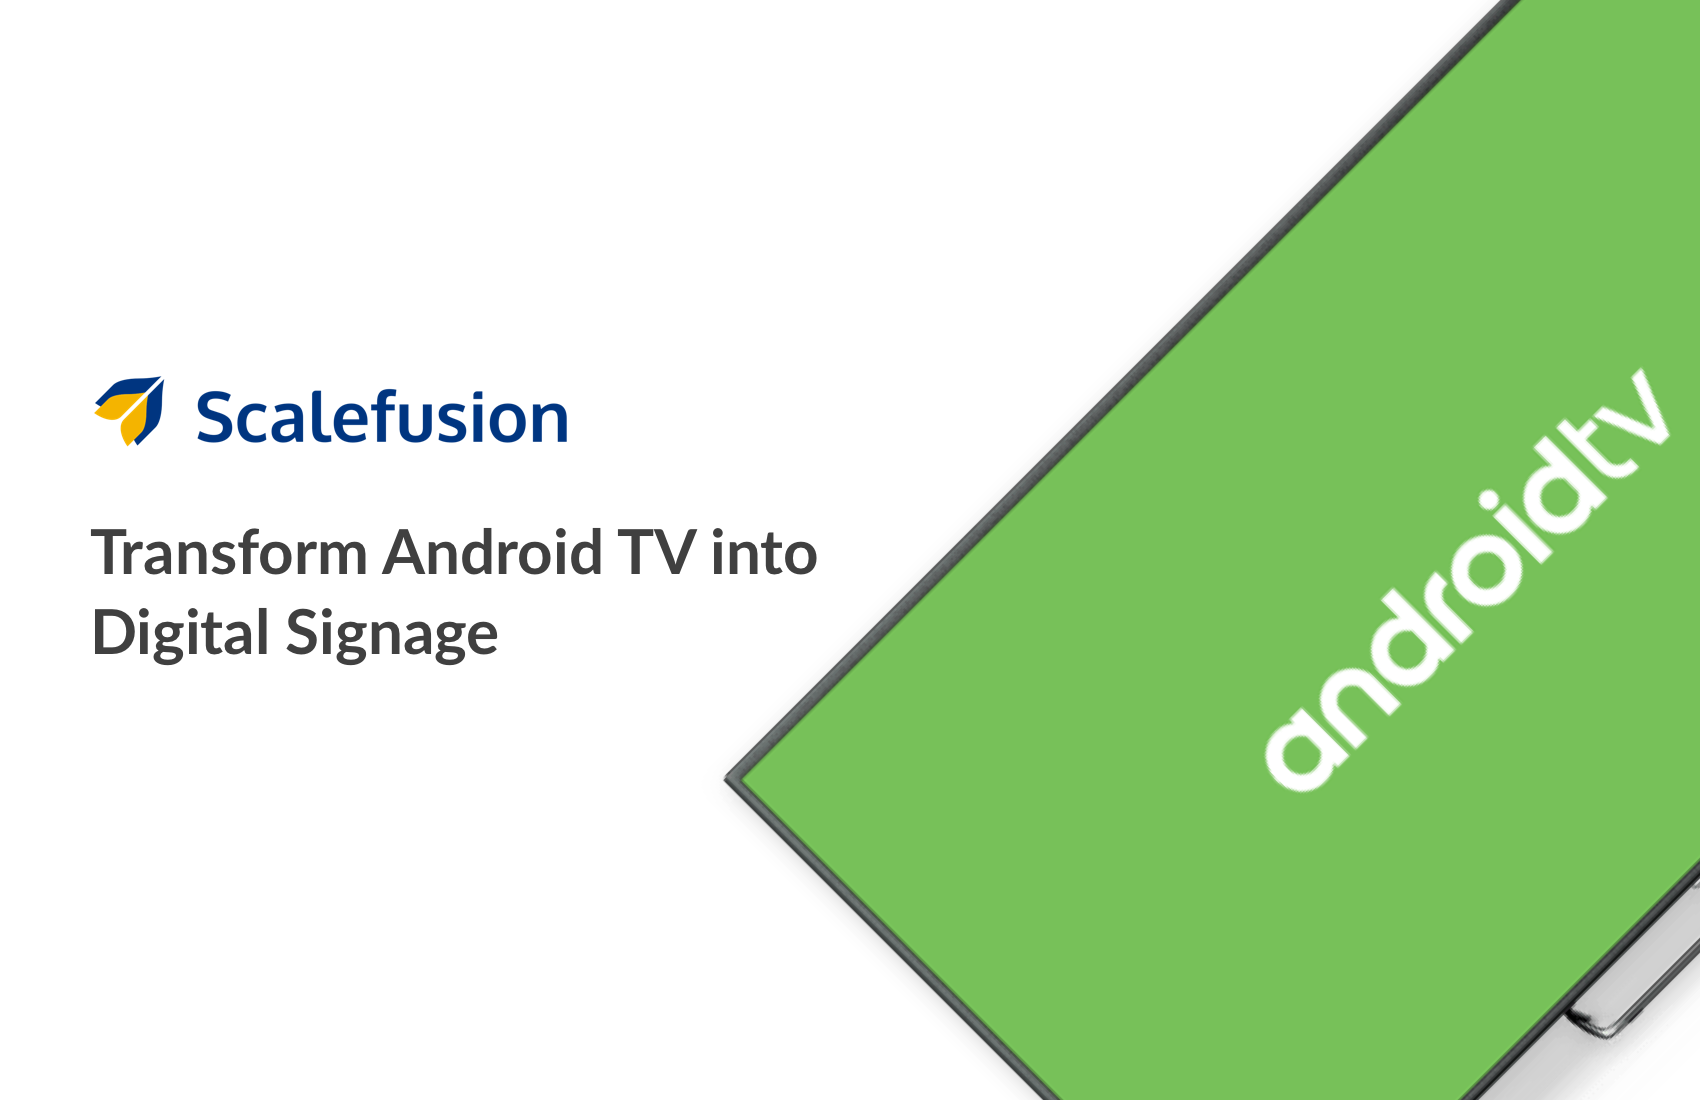 Push content to Android TV